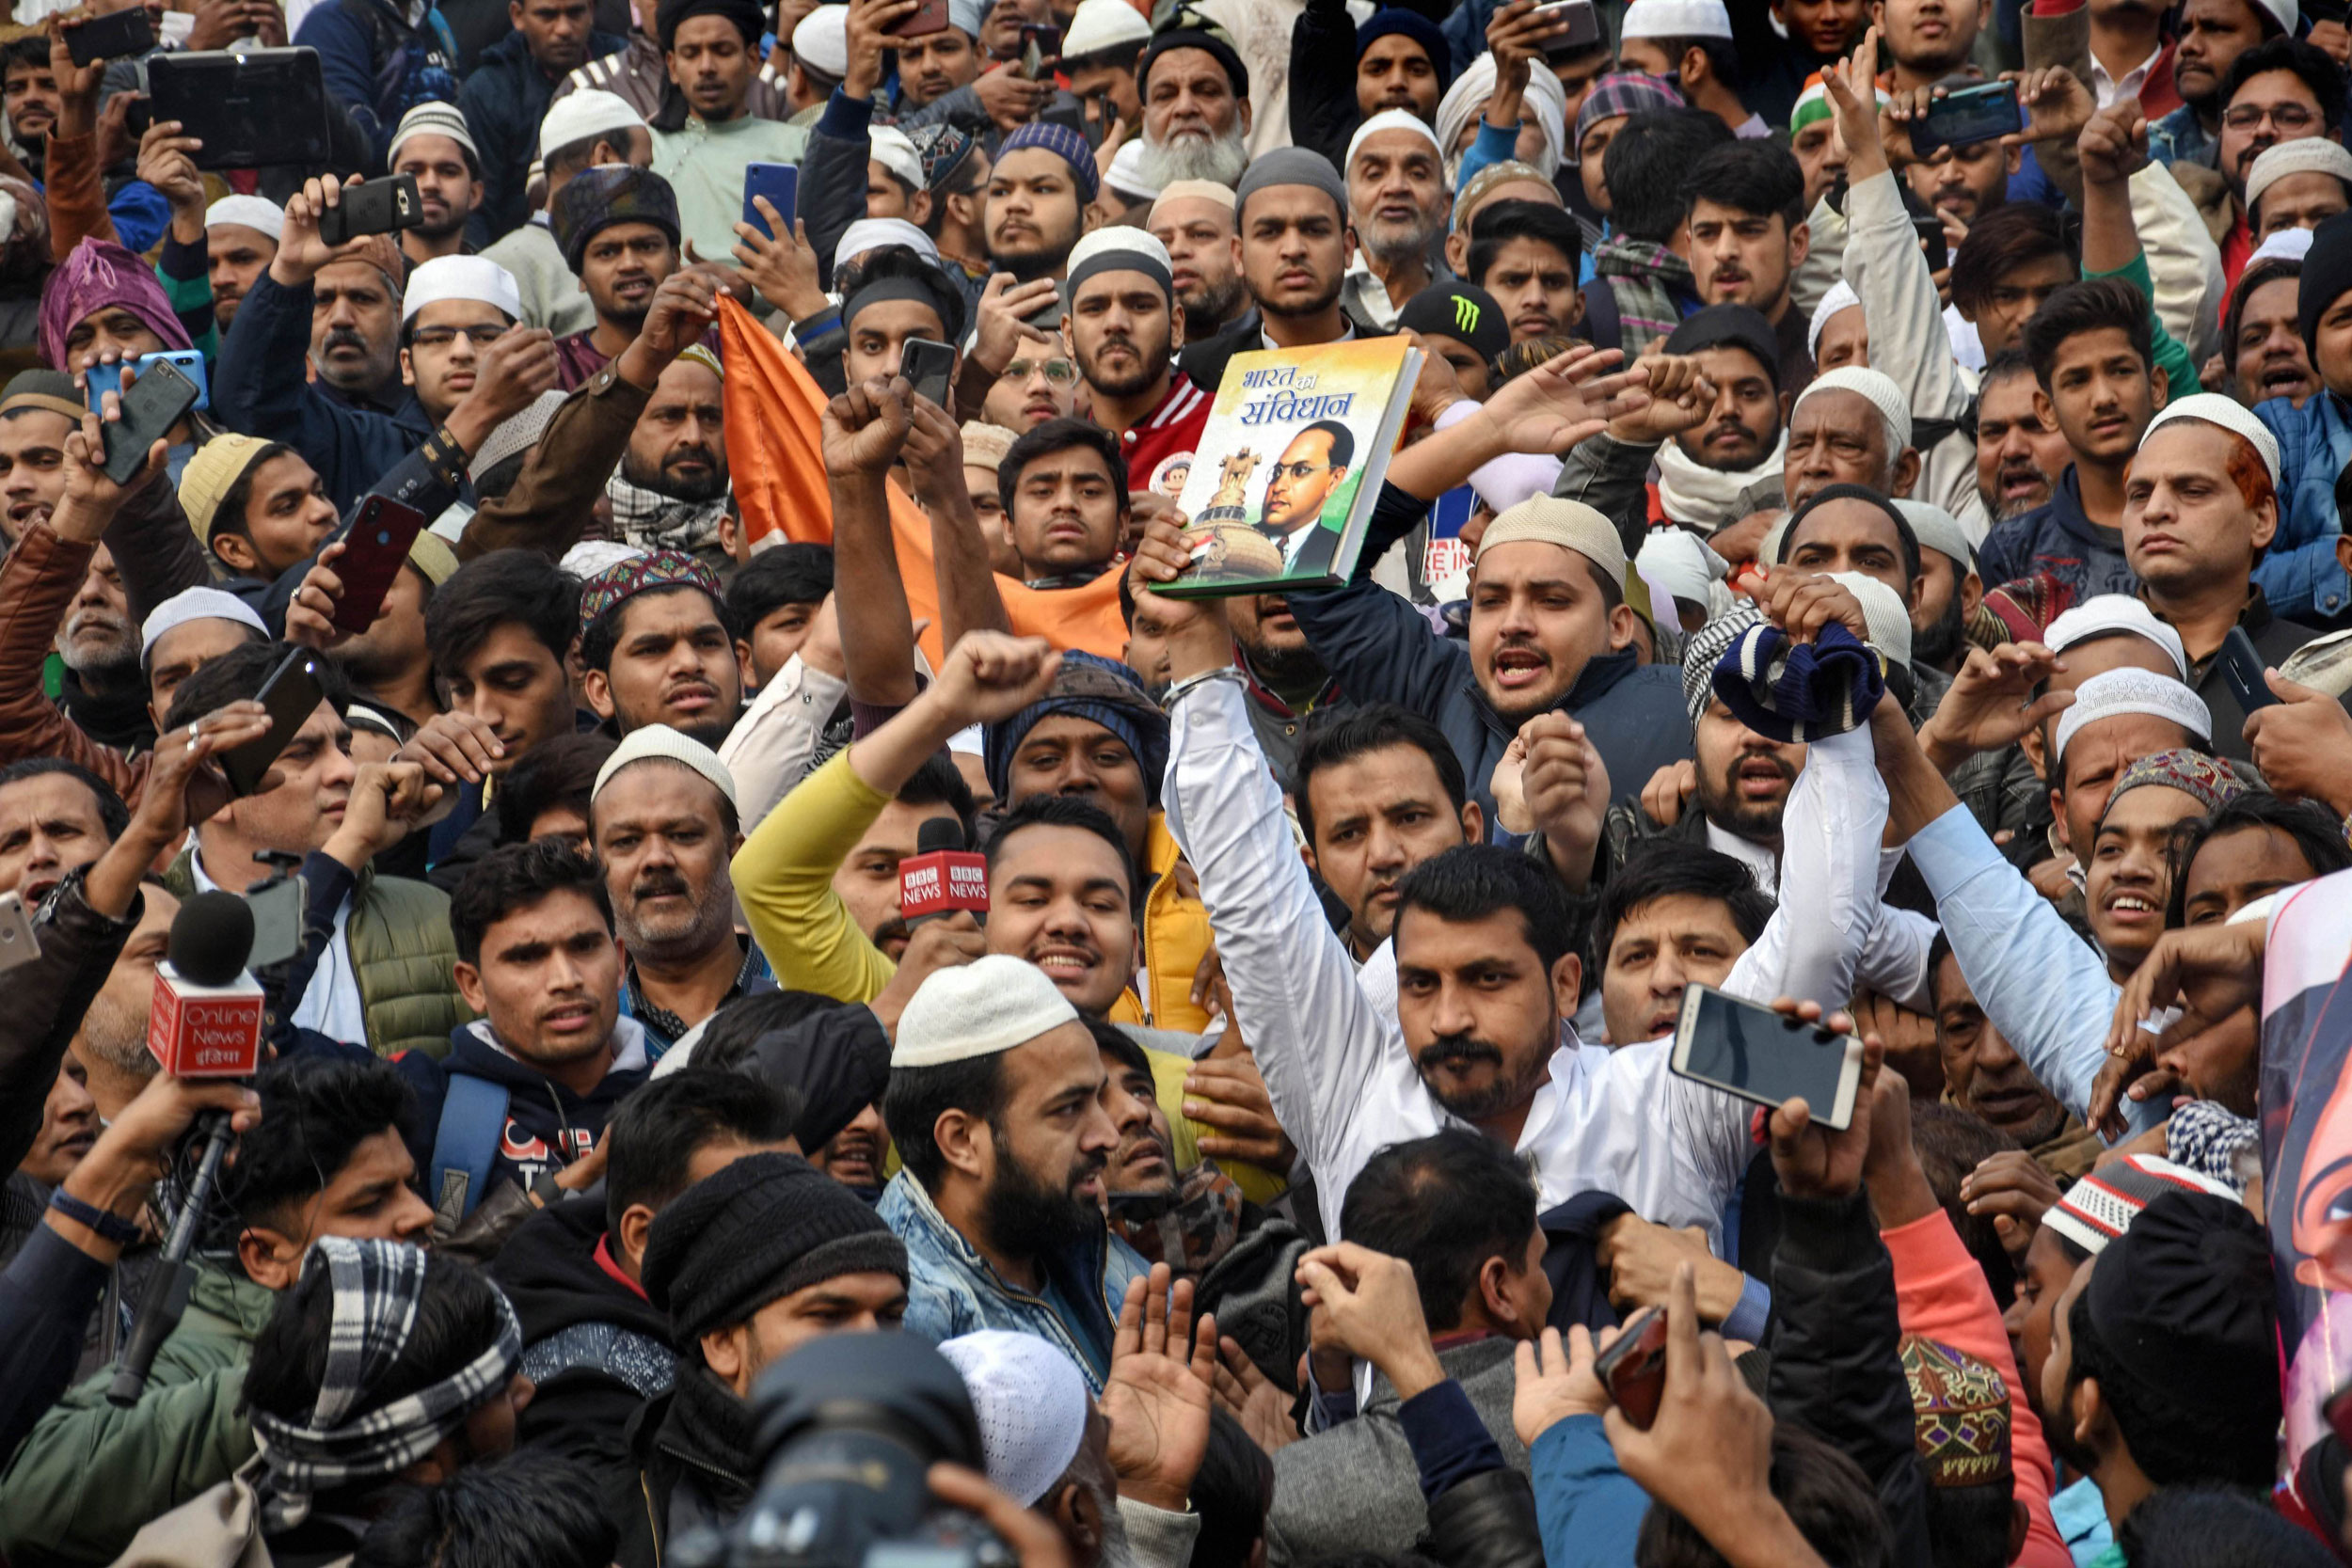 Bhim Army chief Chandrashekhar Azad protest the Citizenship (Amendment) Act at Jama Masjid in New Delhi on December 20, 2019.